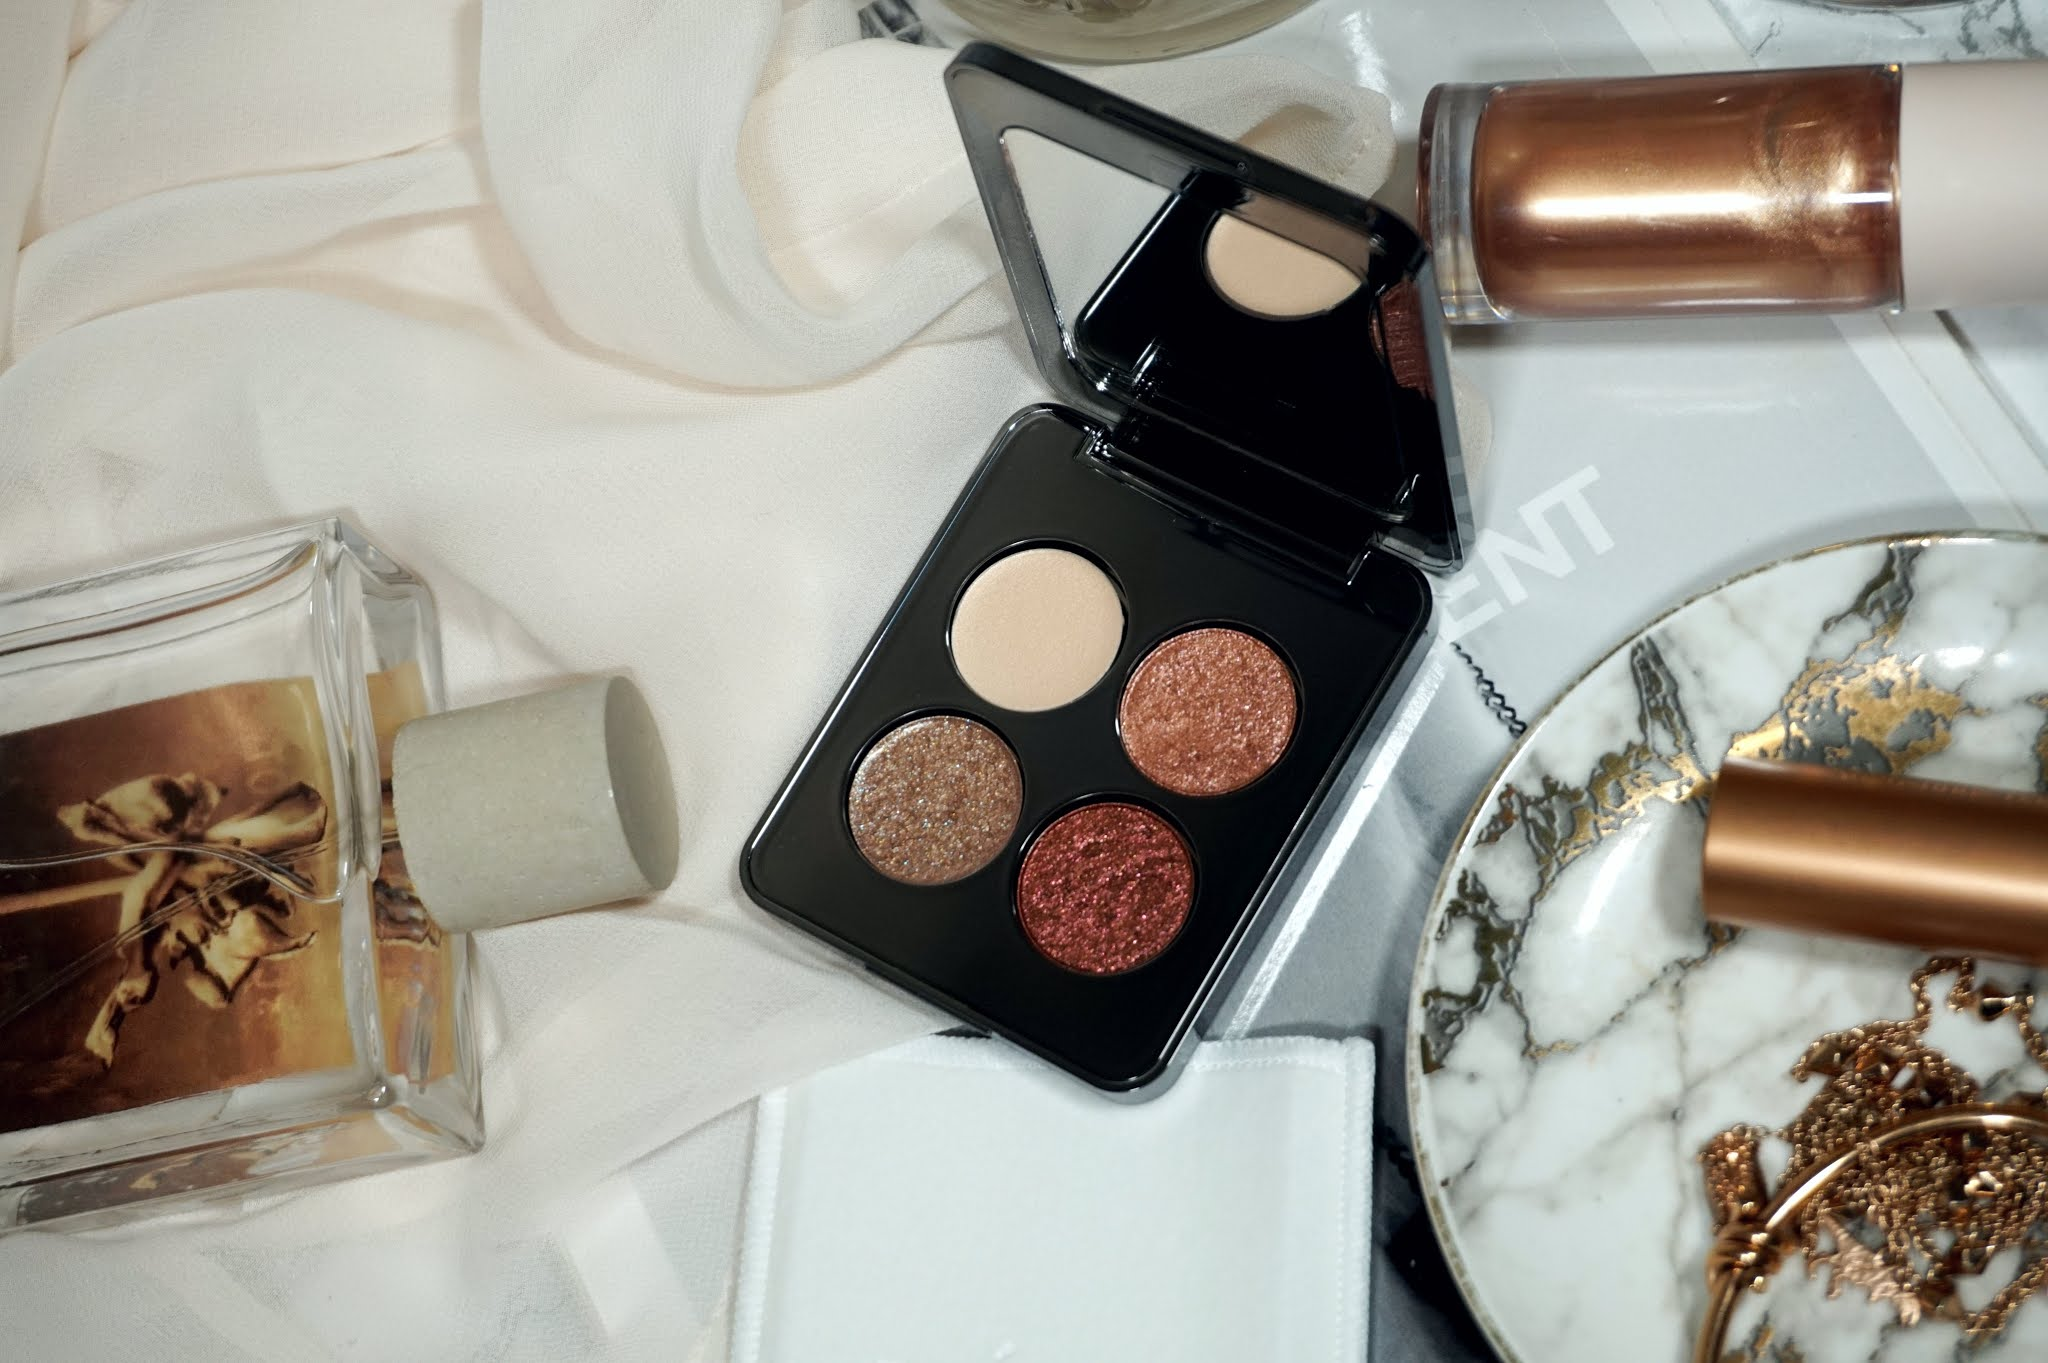 RÓEN Beauty Mood 4 Ever Eye Shadow Palette Review and Swatches